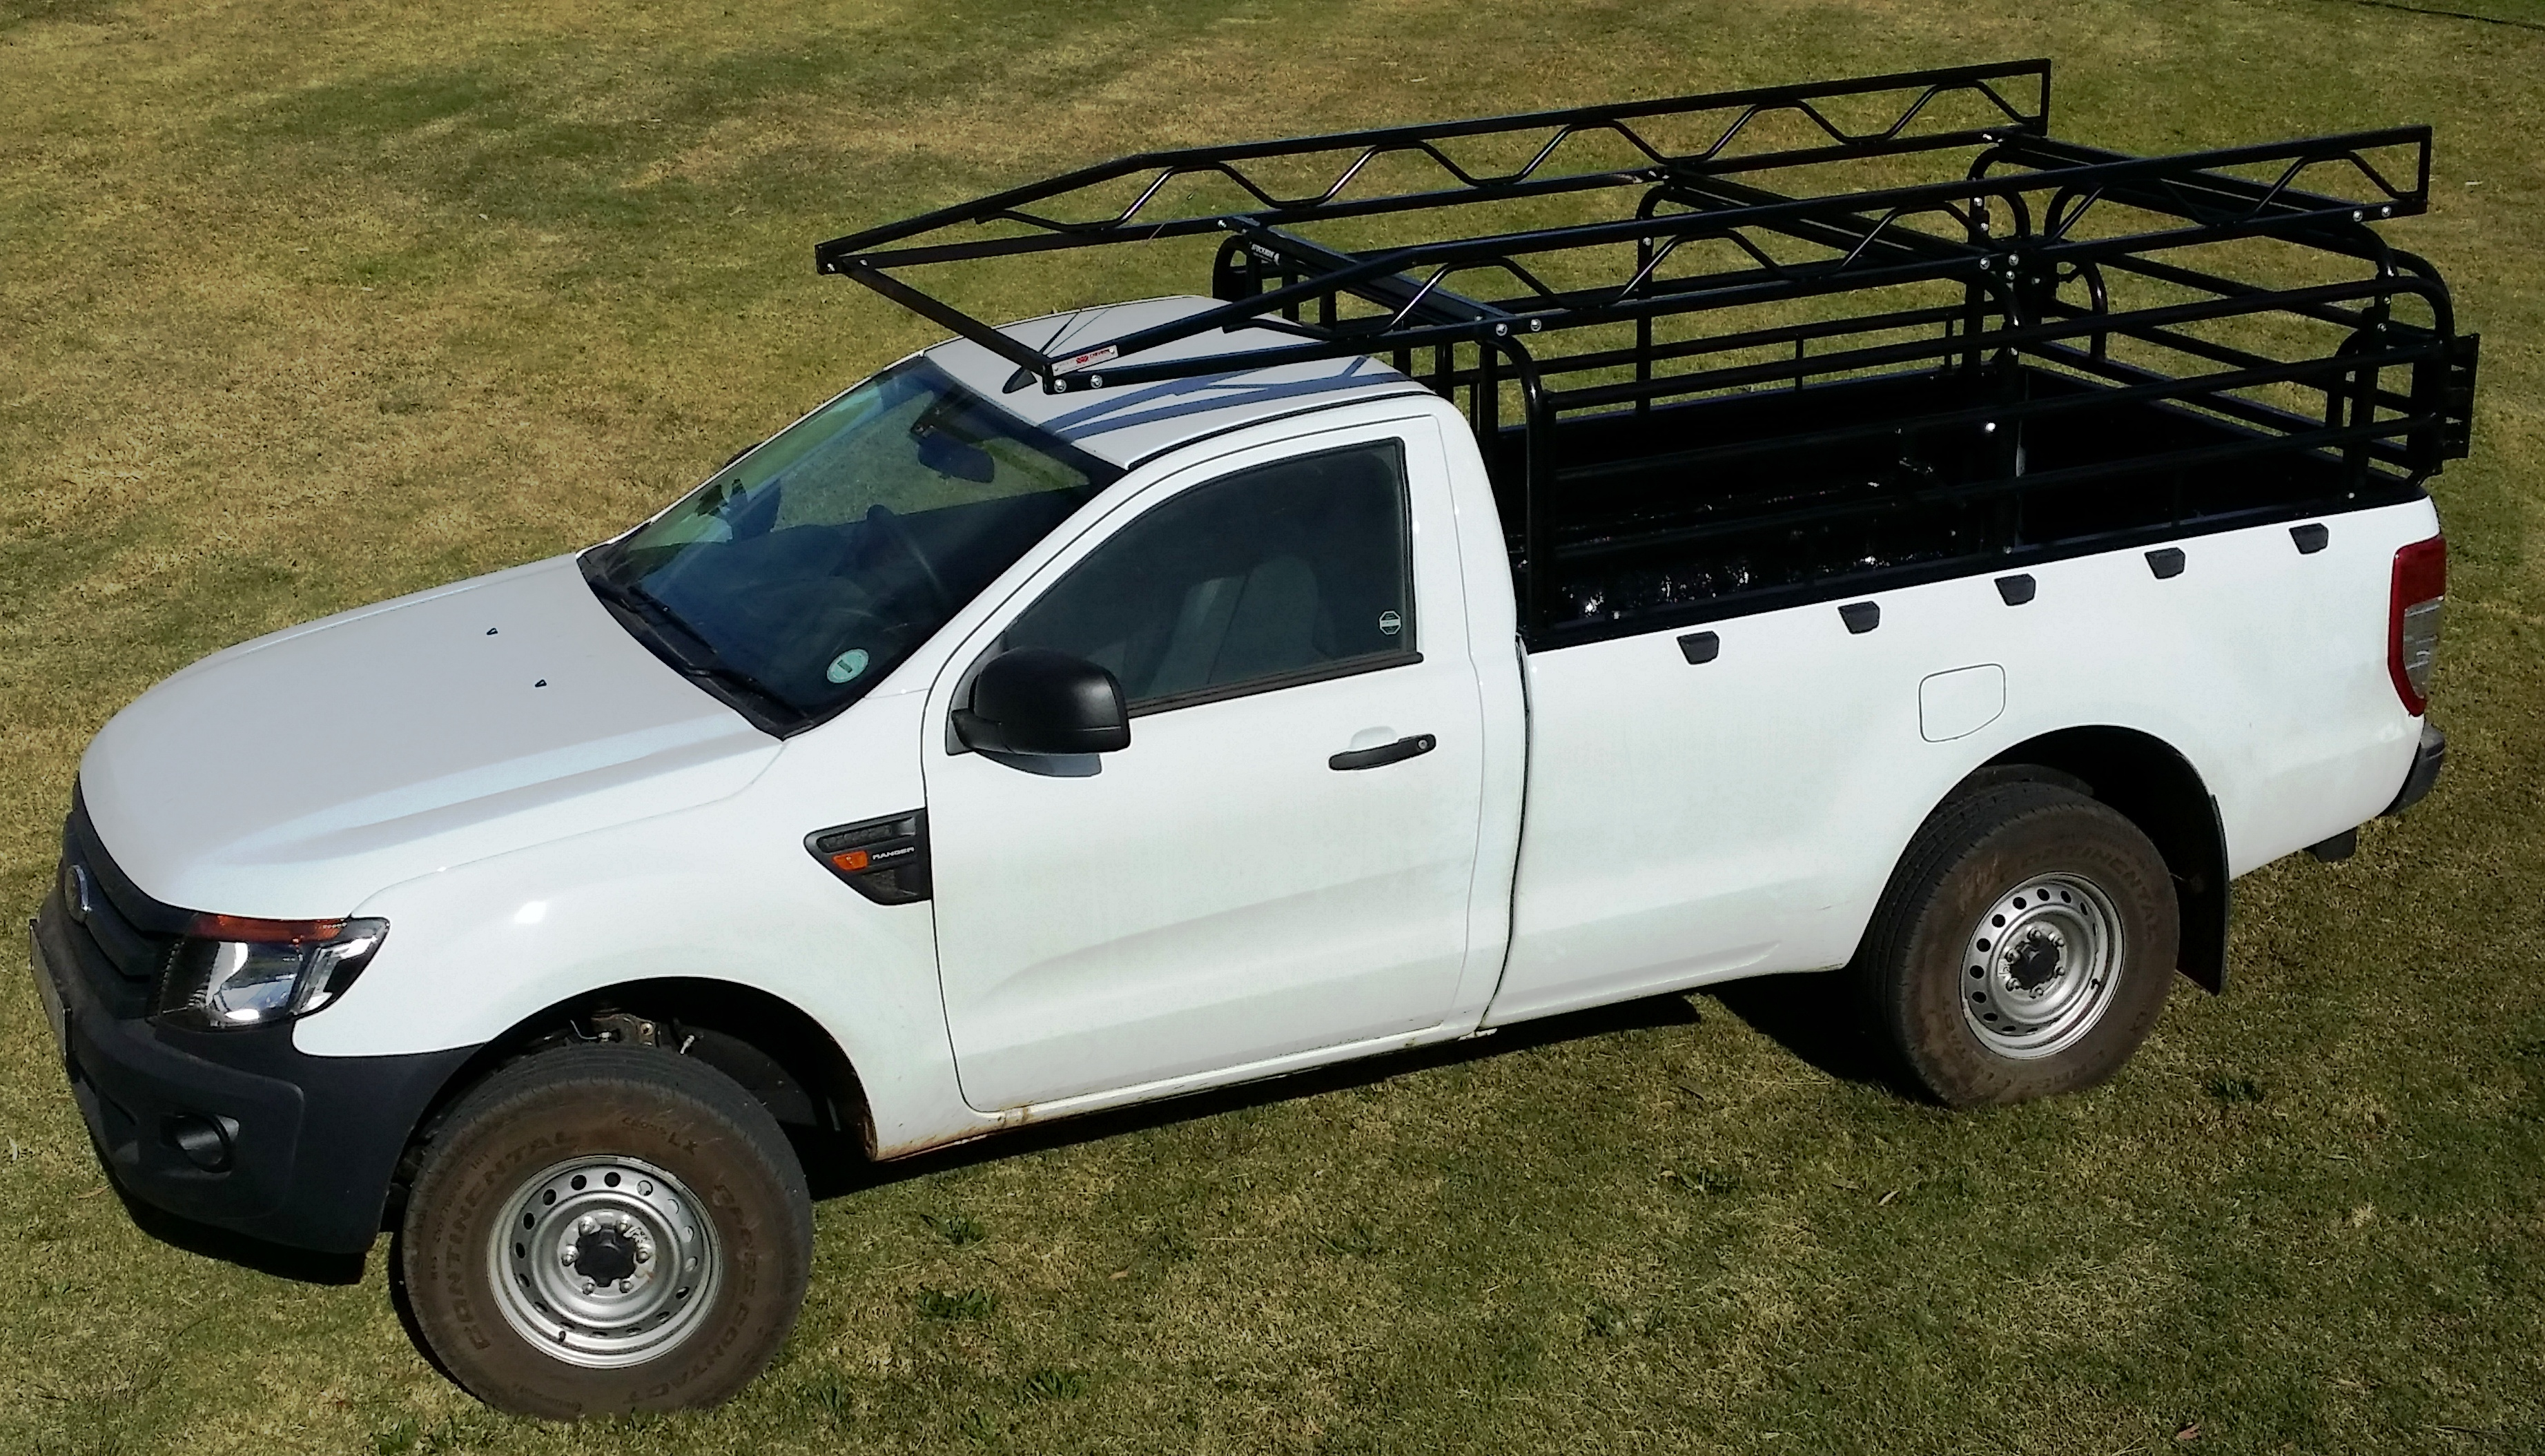 Ford Ranger Accessories Raptor Kits Tow Bars